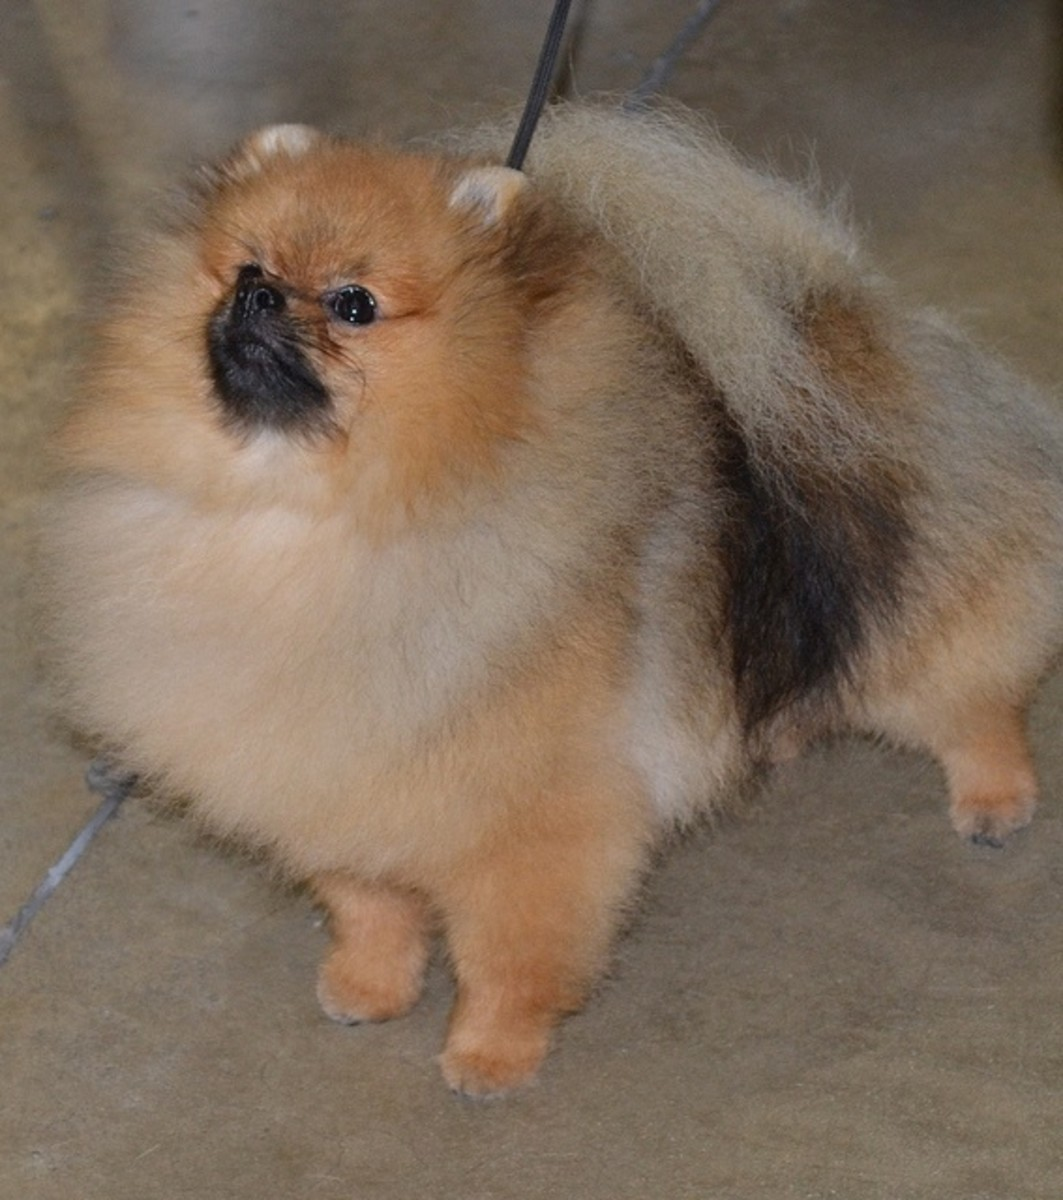 Pomeranians are really fluffy.